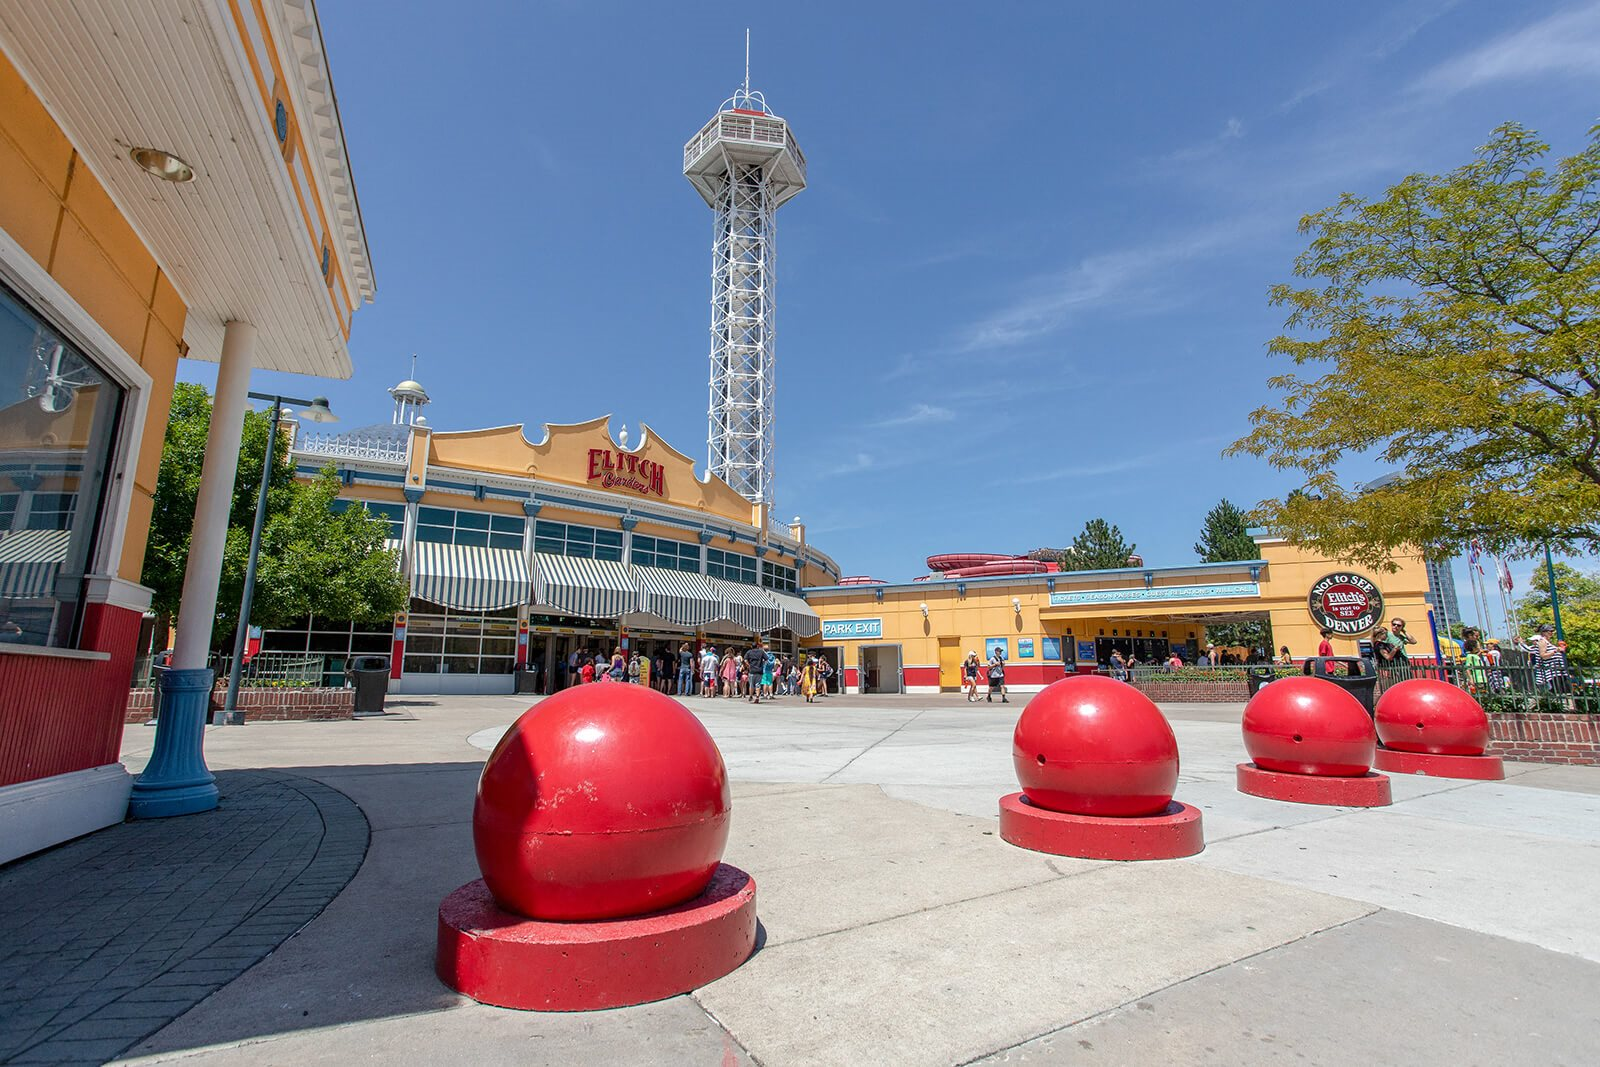 Elitch Gardens Theme and Water Park Is Minutes Away from Element 47 by Windsor, 2180 N. Bryant St., Denver